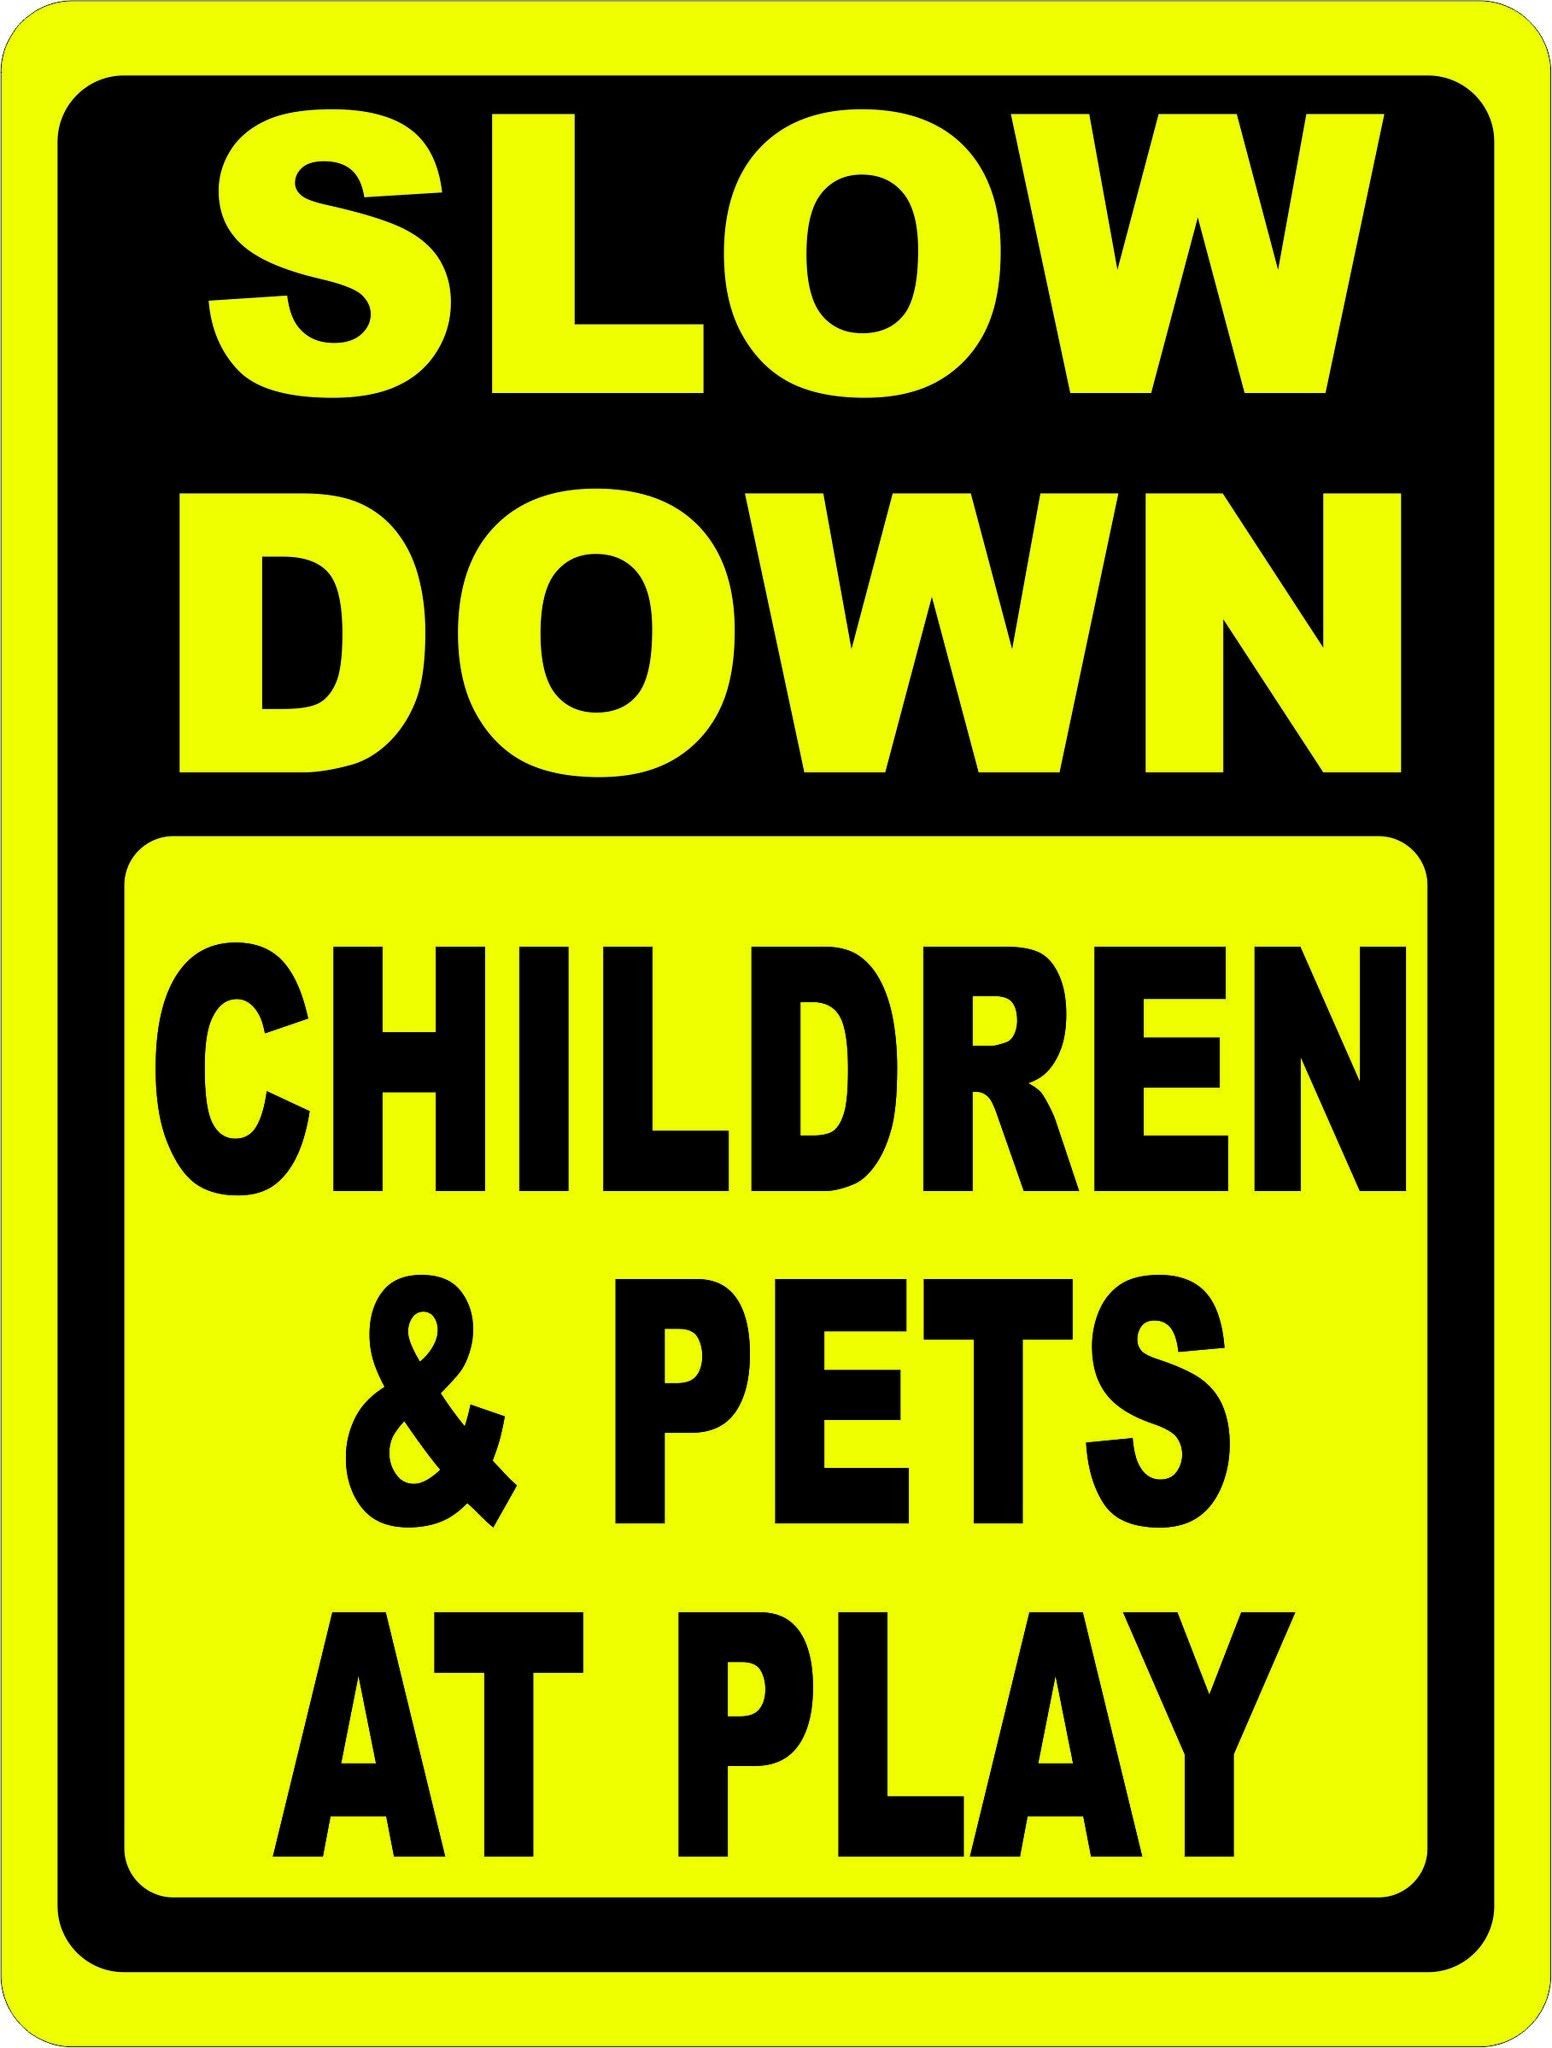 Slow Down Children Pets At Play Sign Animals For Kids Slow Down Vinyl Graphics